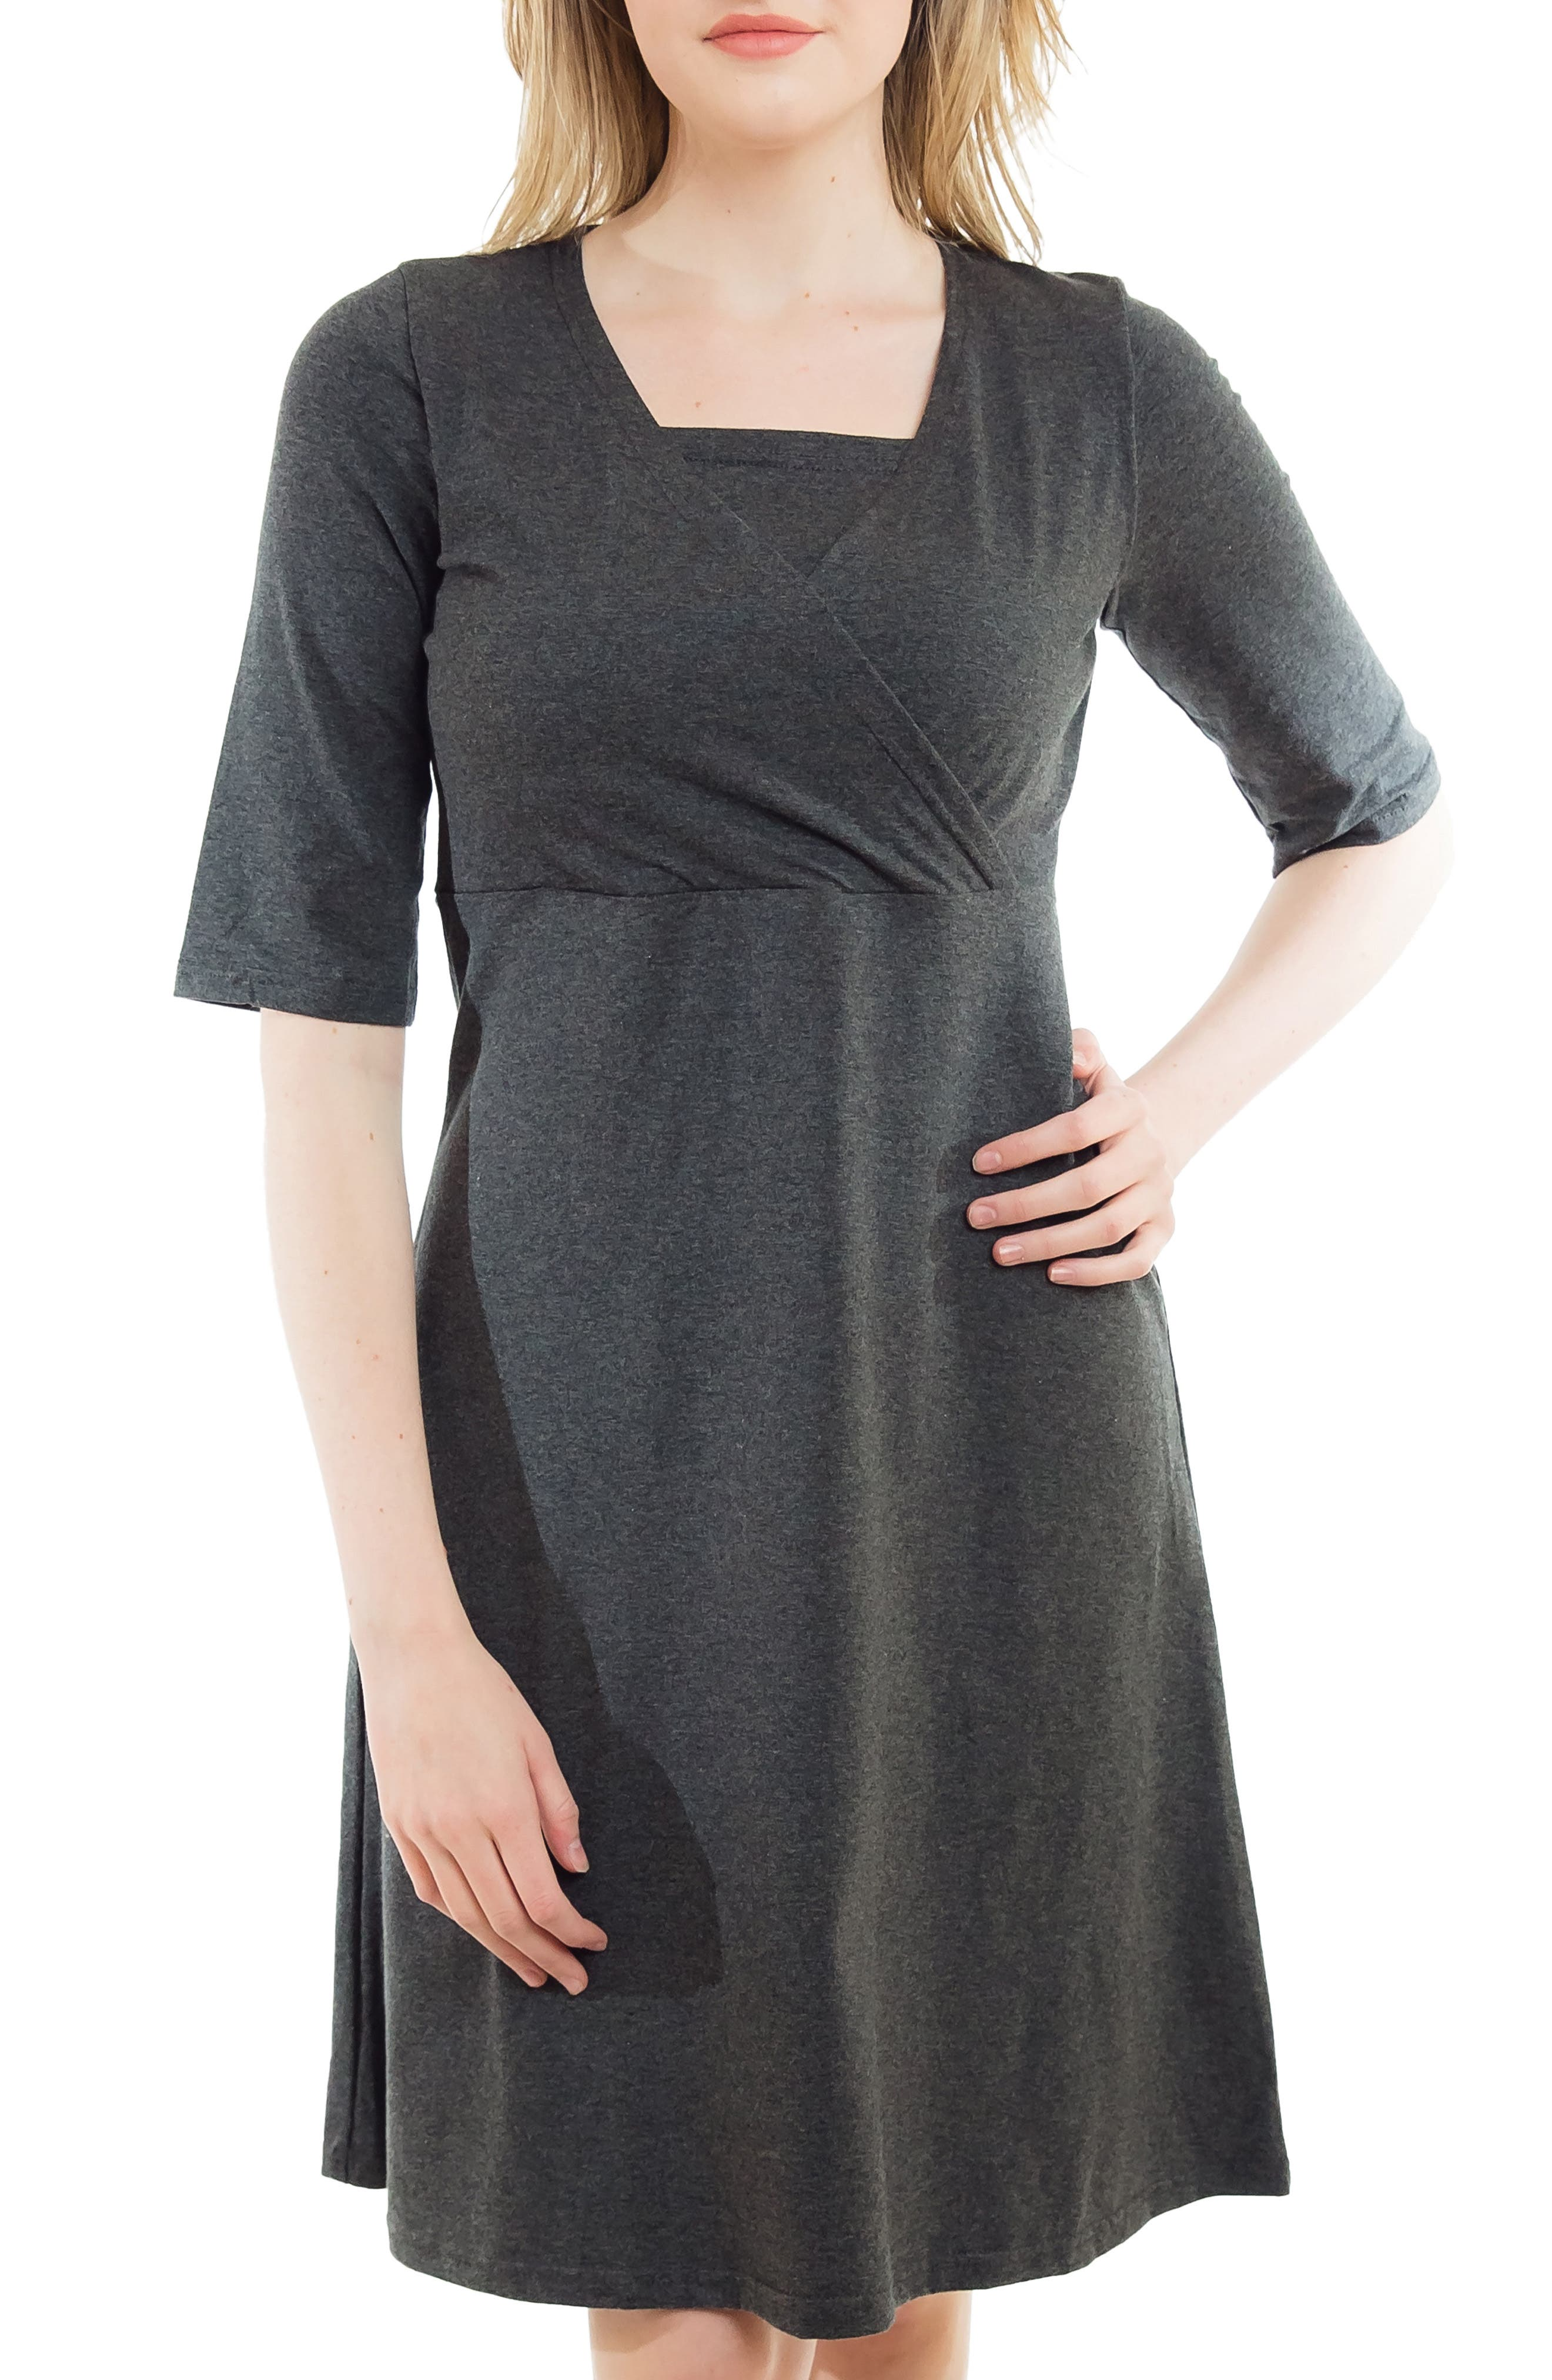 Crossover Maternity/Nursing Dress,                             Alternate thumbnail 4, color,                             HEATHER CHARCOAL